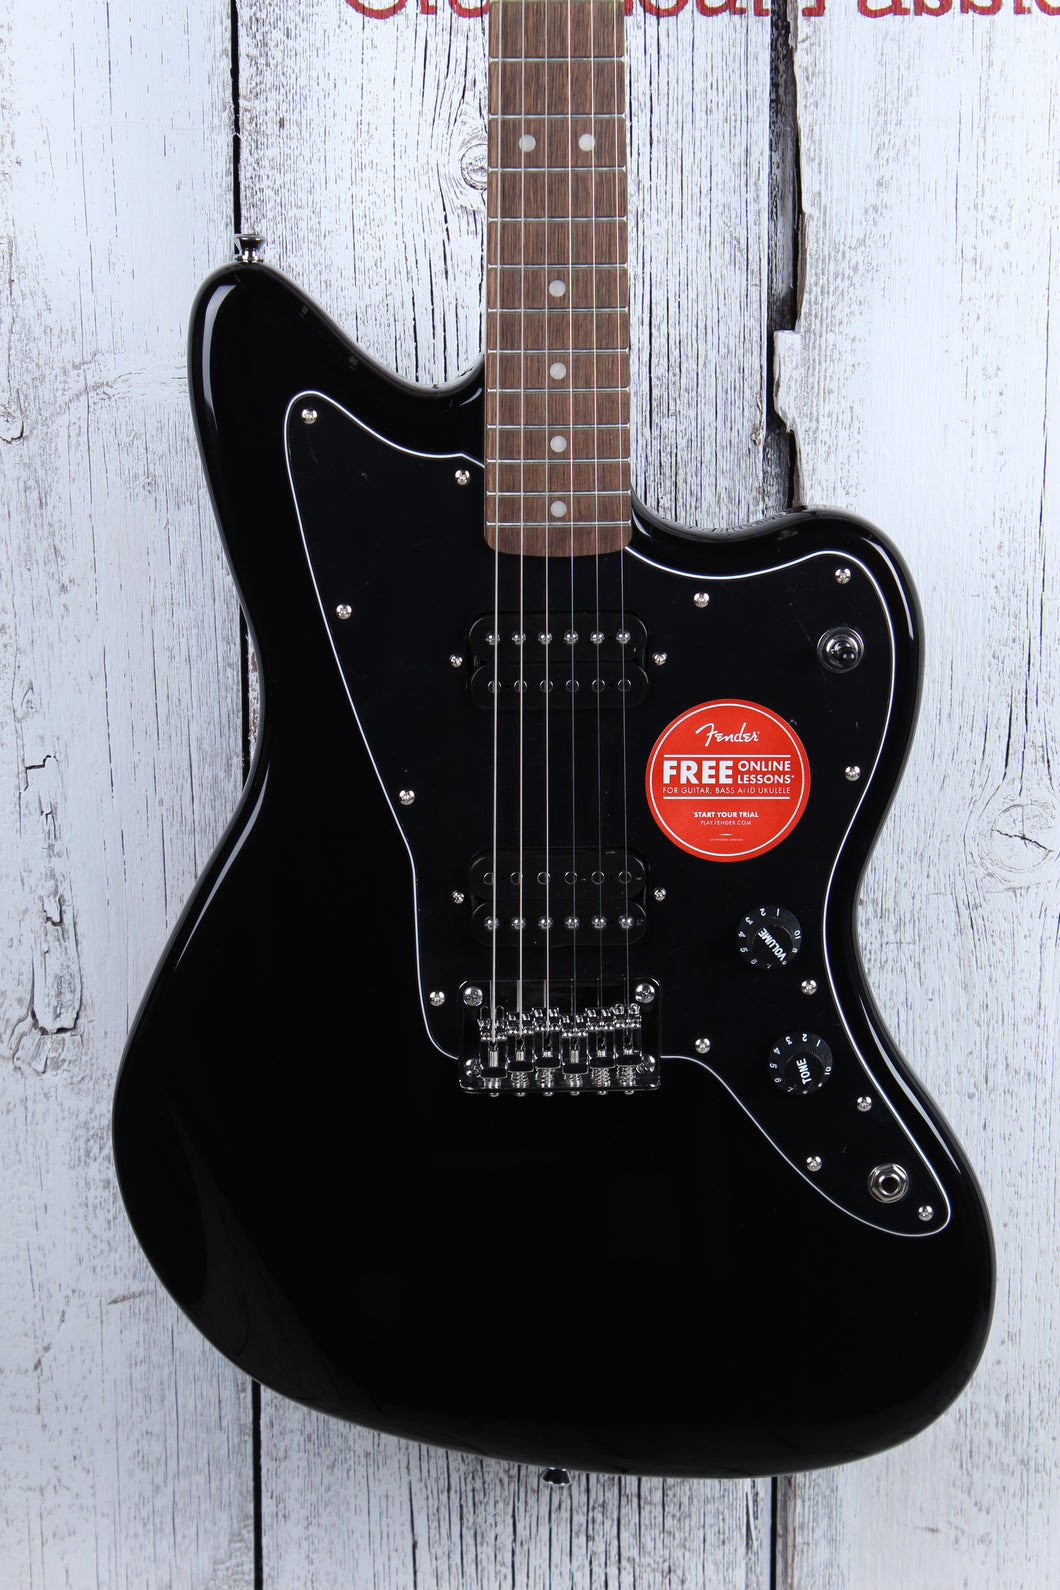 Fender® Squier Affinity Series Jazzmaster HH Electric Guitar Black Gloss Finish